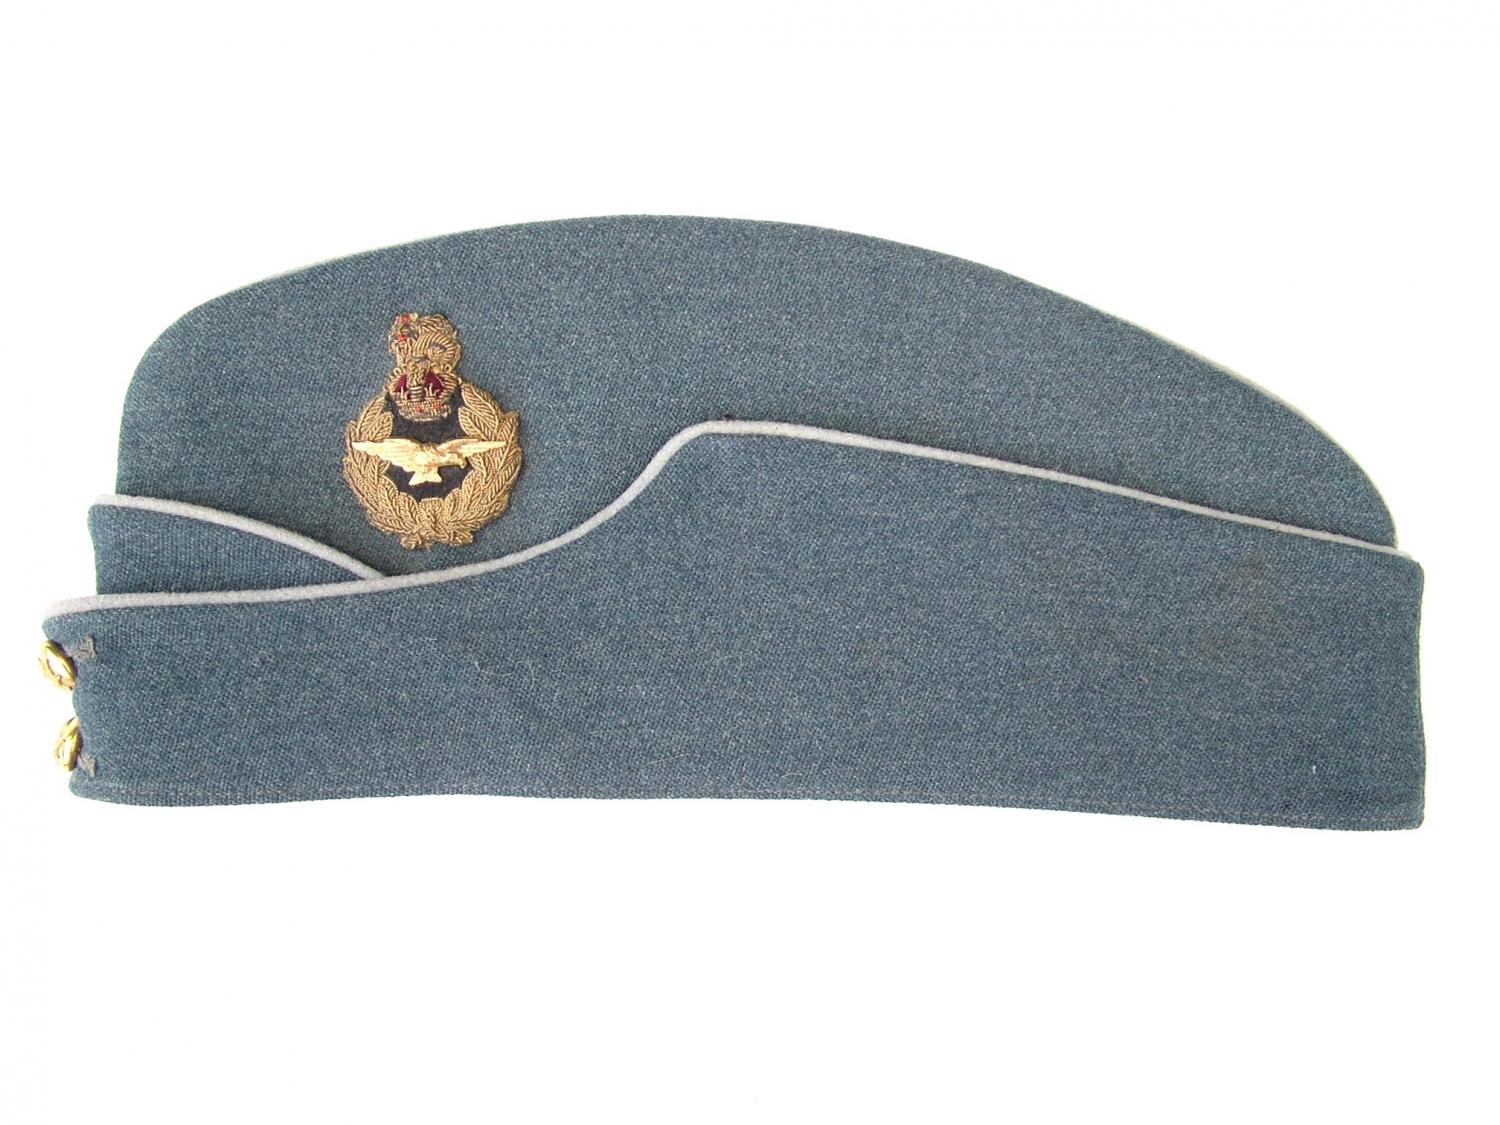 RAF 'Air Rank' Field Service Cap